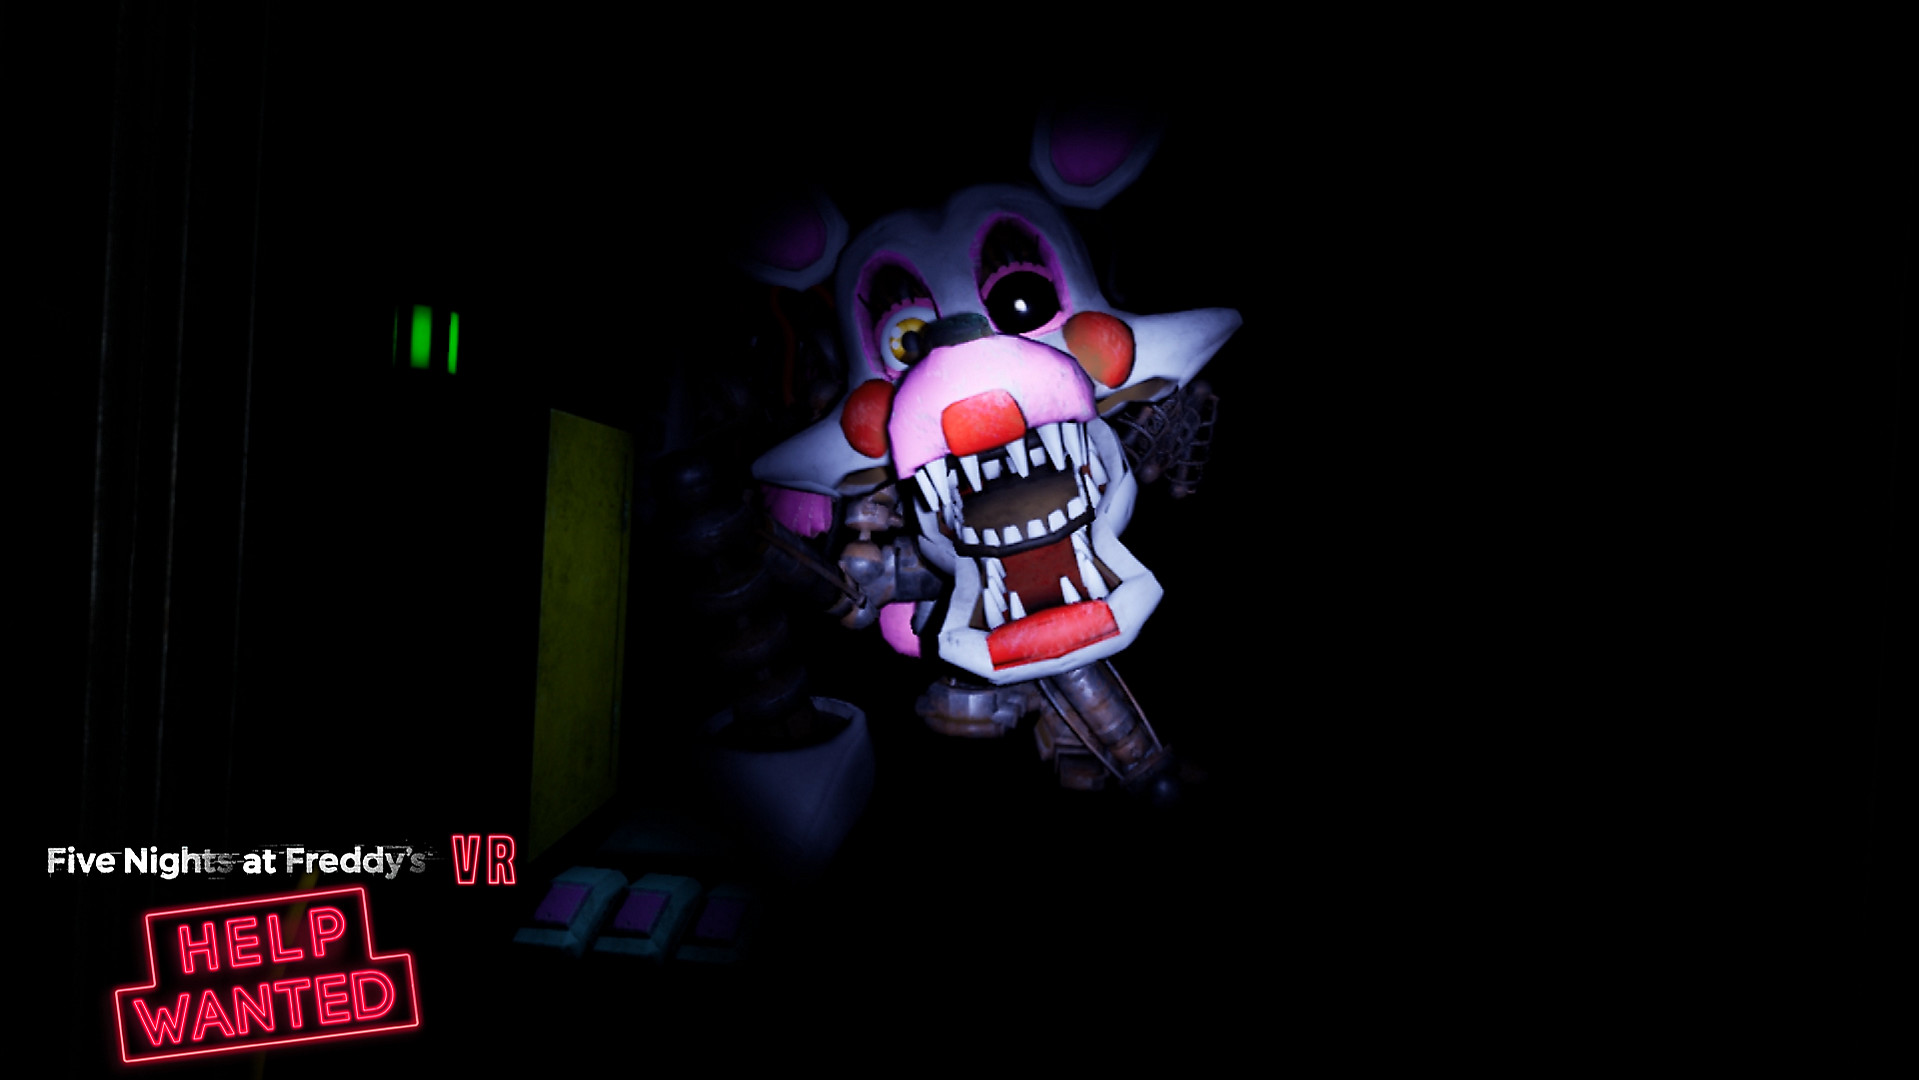 5 Nights At Freddy's Chica five nights at freddy's vr: help wanted game   ps4 - playstation